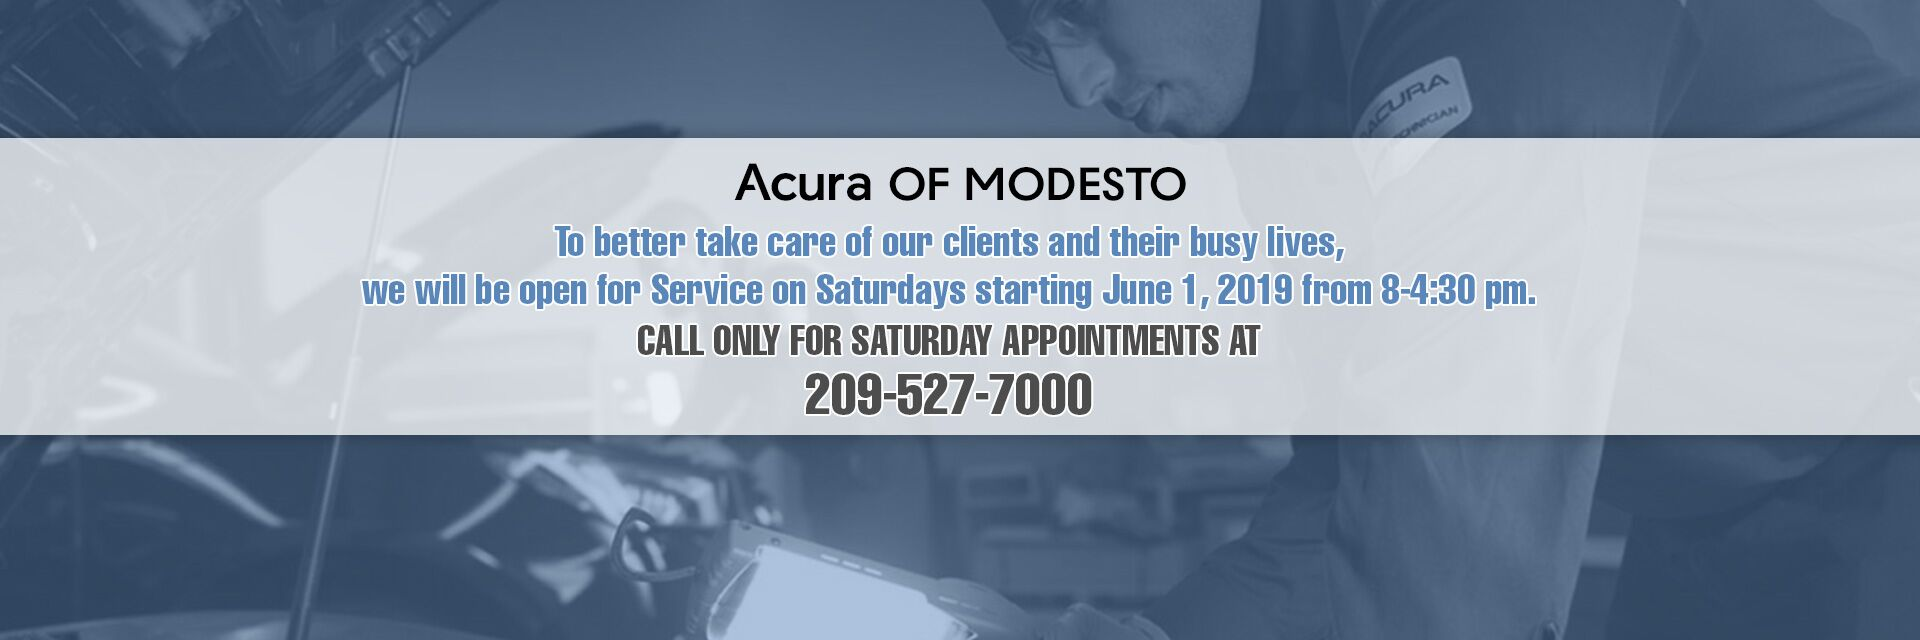 Acura of Modesto Saturday Service beginning June 1